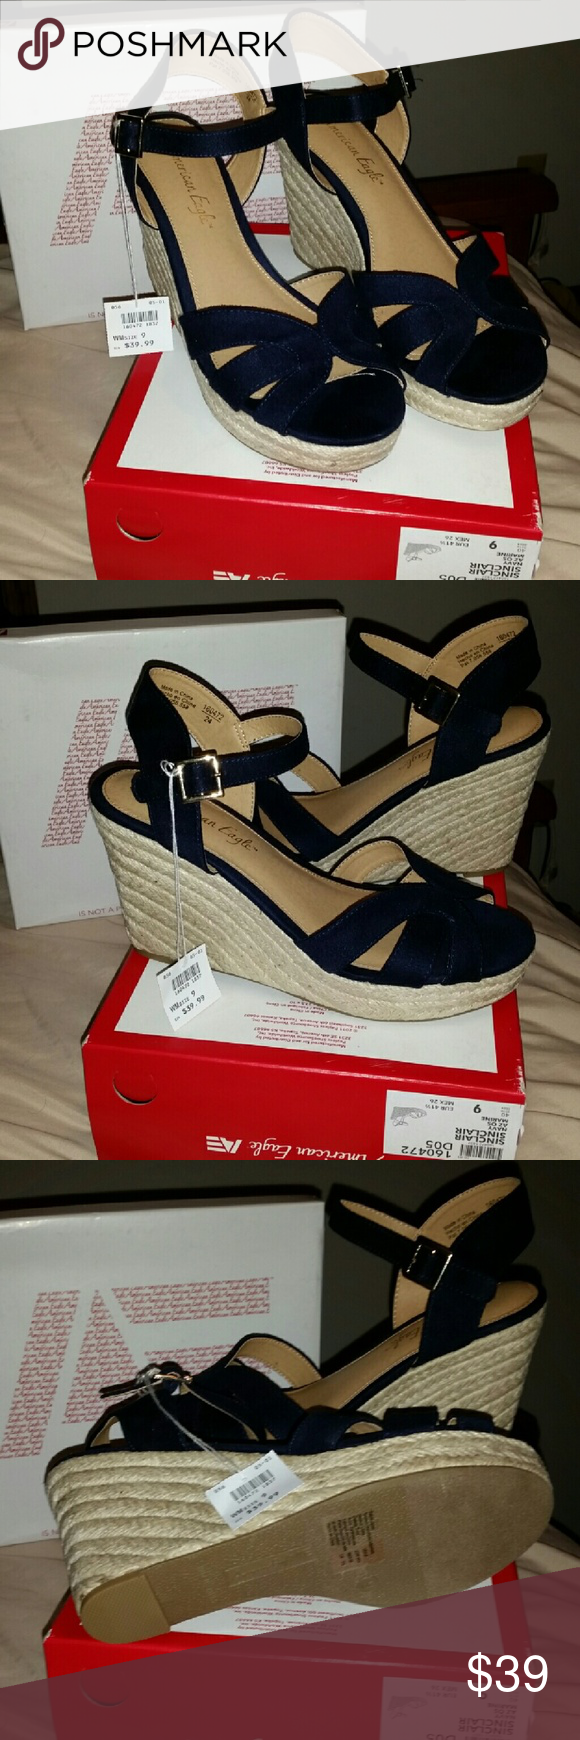 7b478530c424 American Eagle Wedge Sandals from Payless American Eagle Wedge Sandals  Heels from Payless Navy Blue Solf Material Super Cute! Size 9 Wide WM (EUR  44 1 2) ...